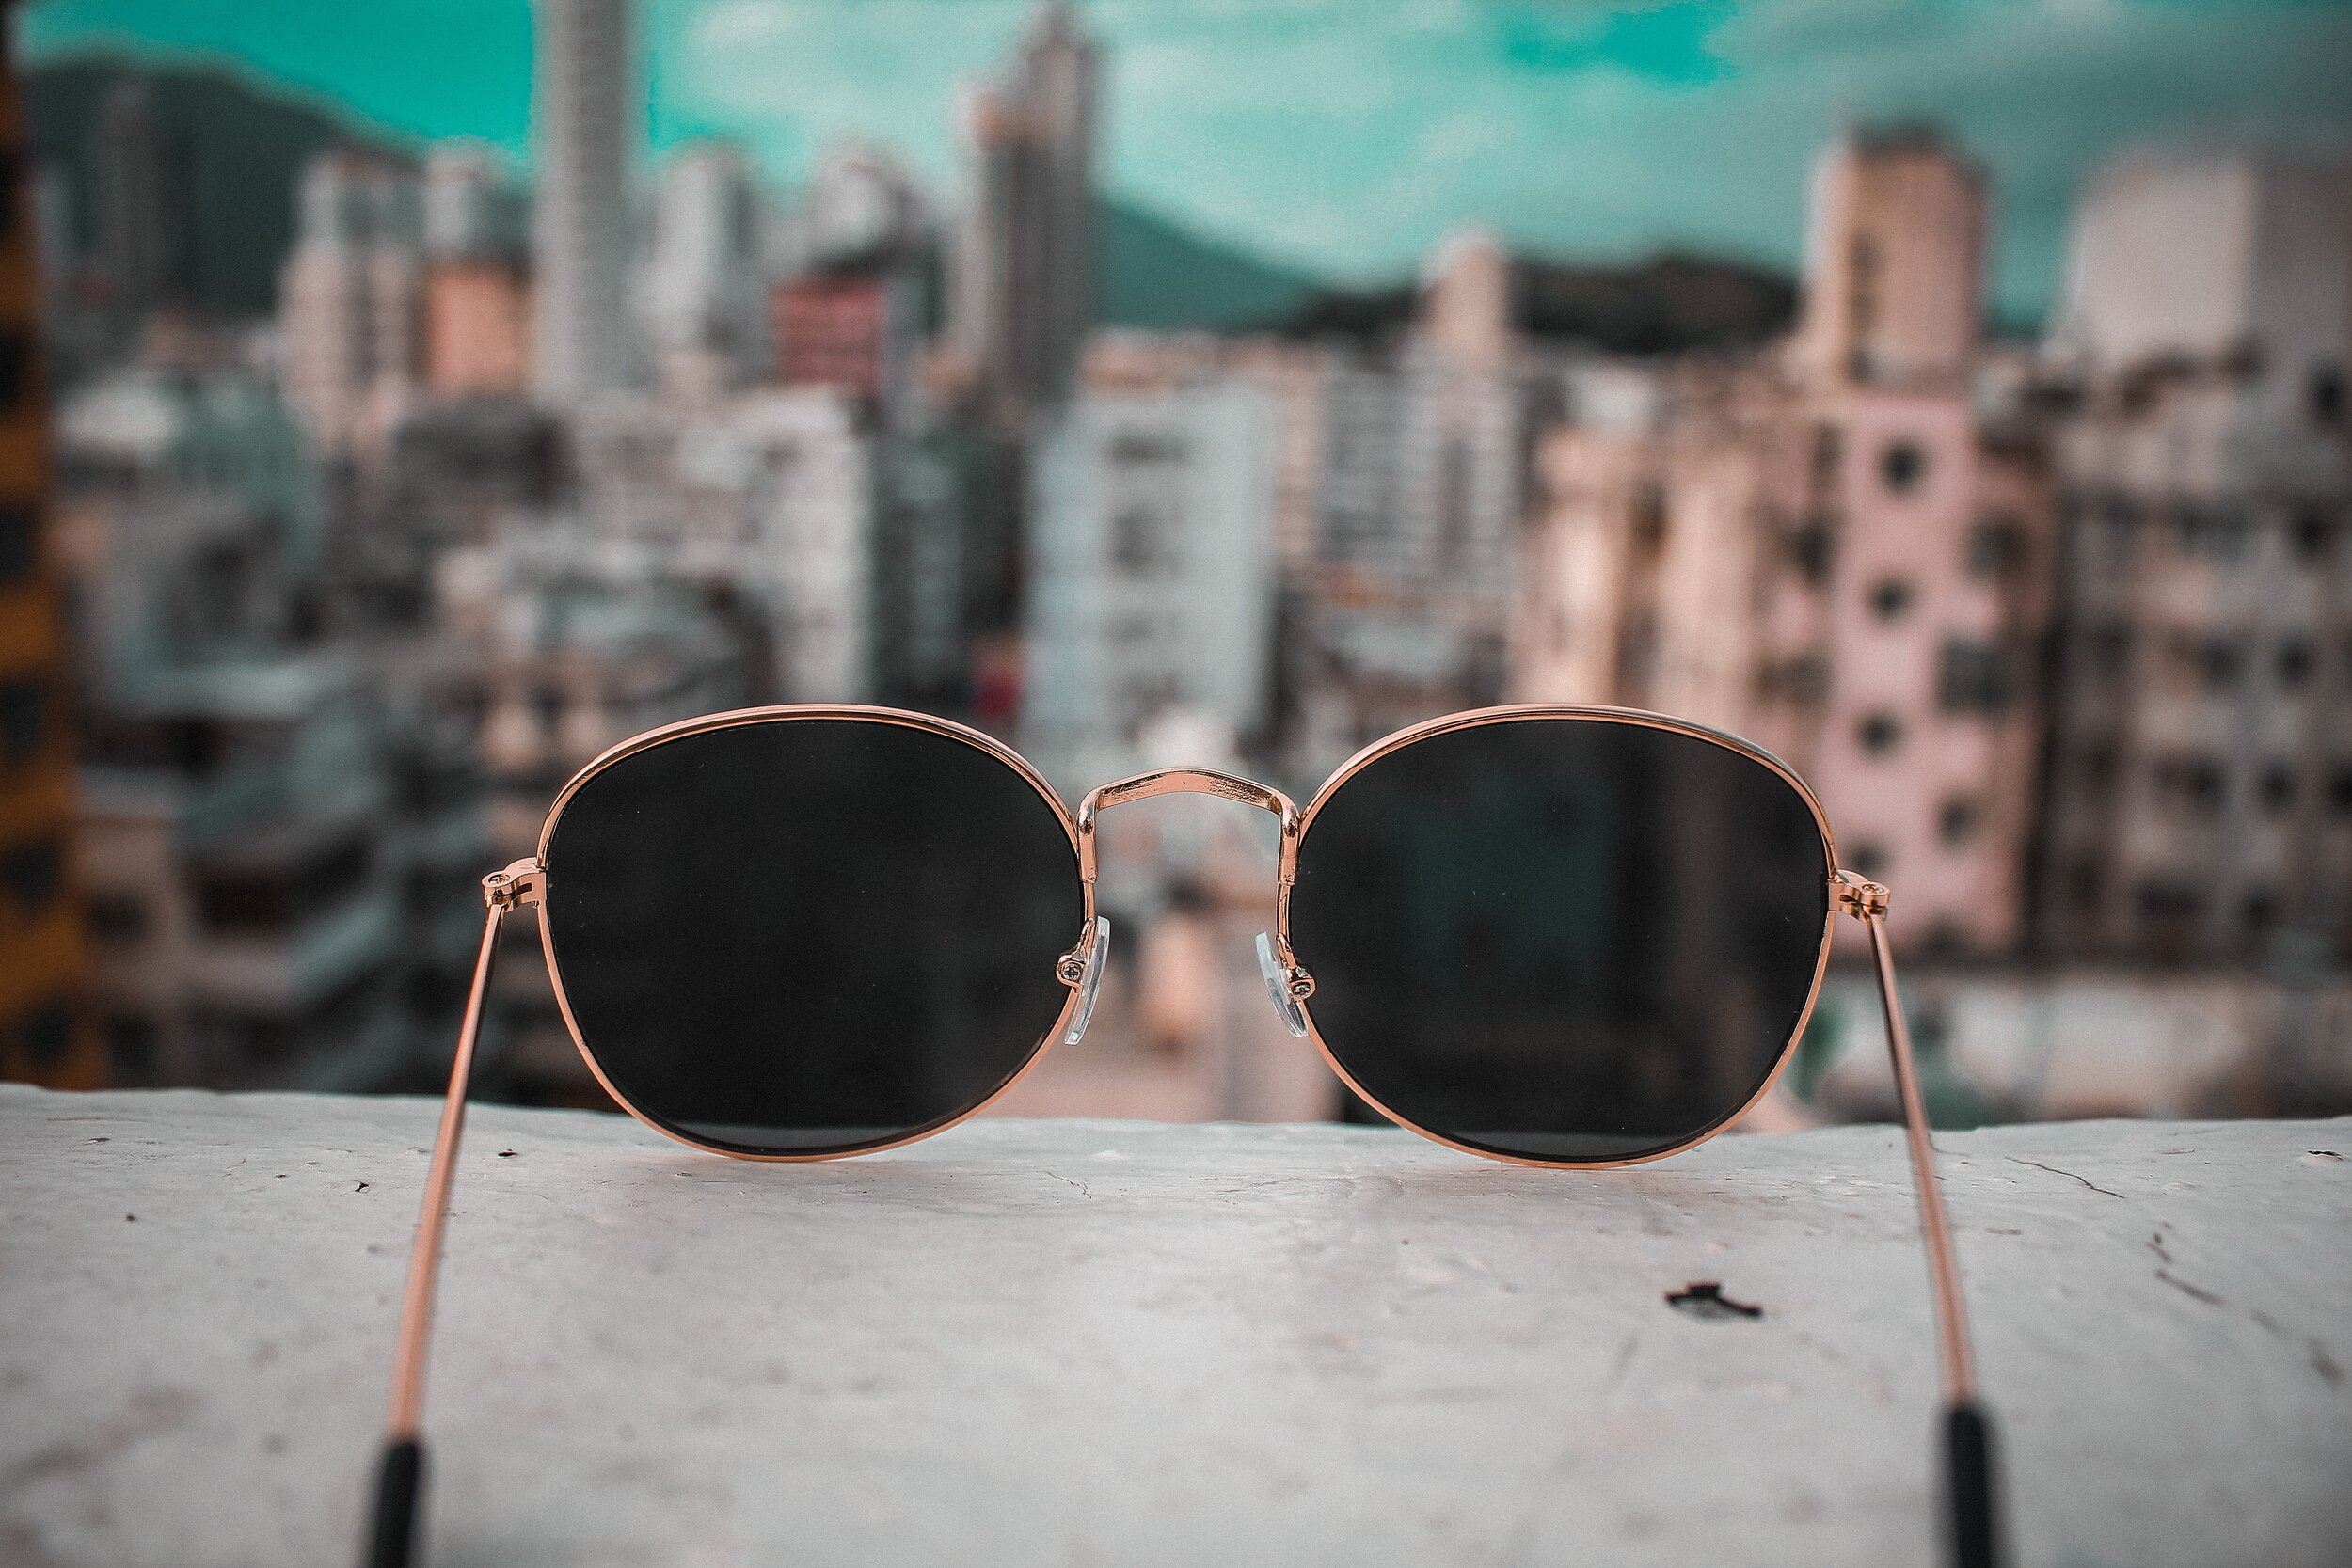 sunglasses with a blurred city view beyond them